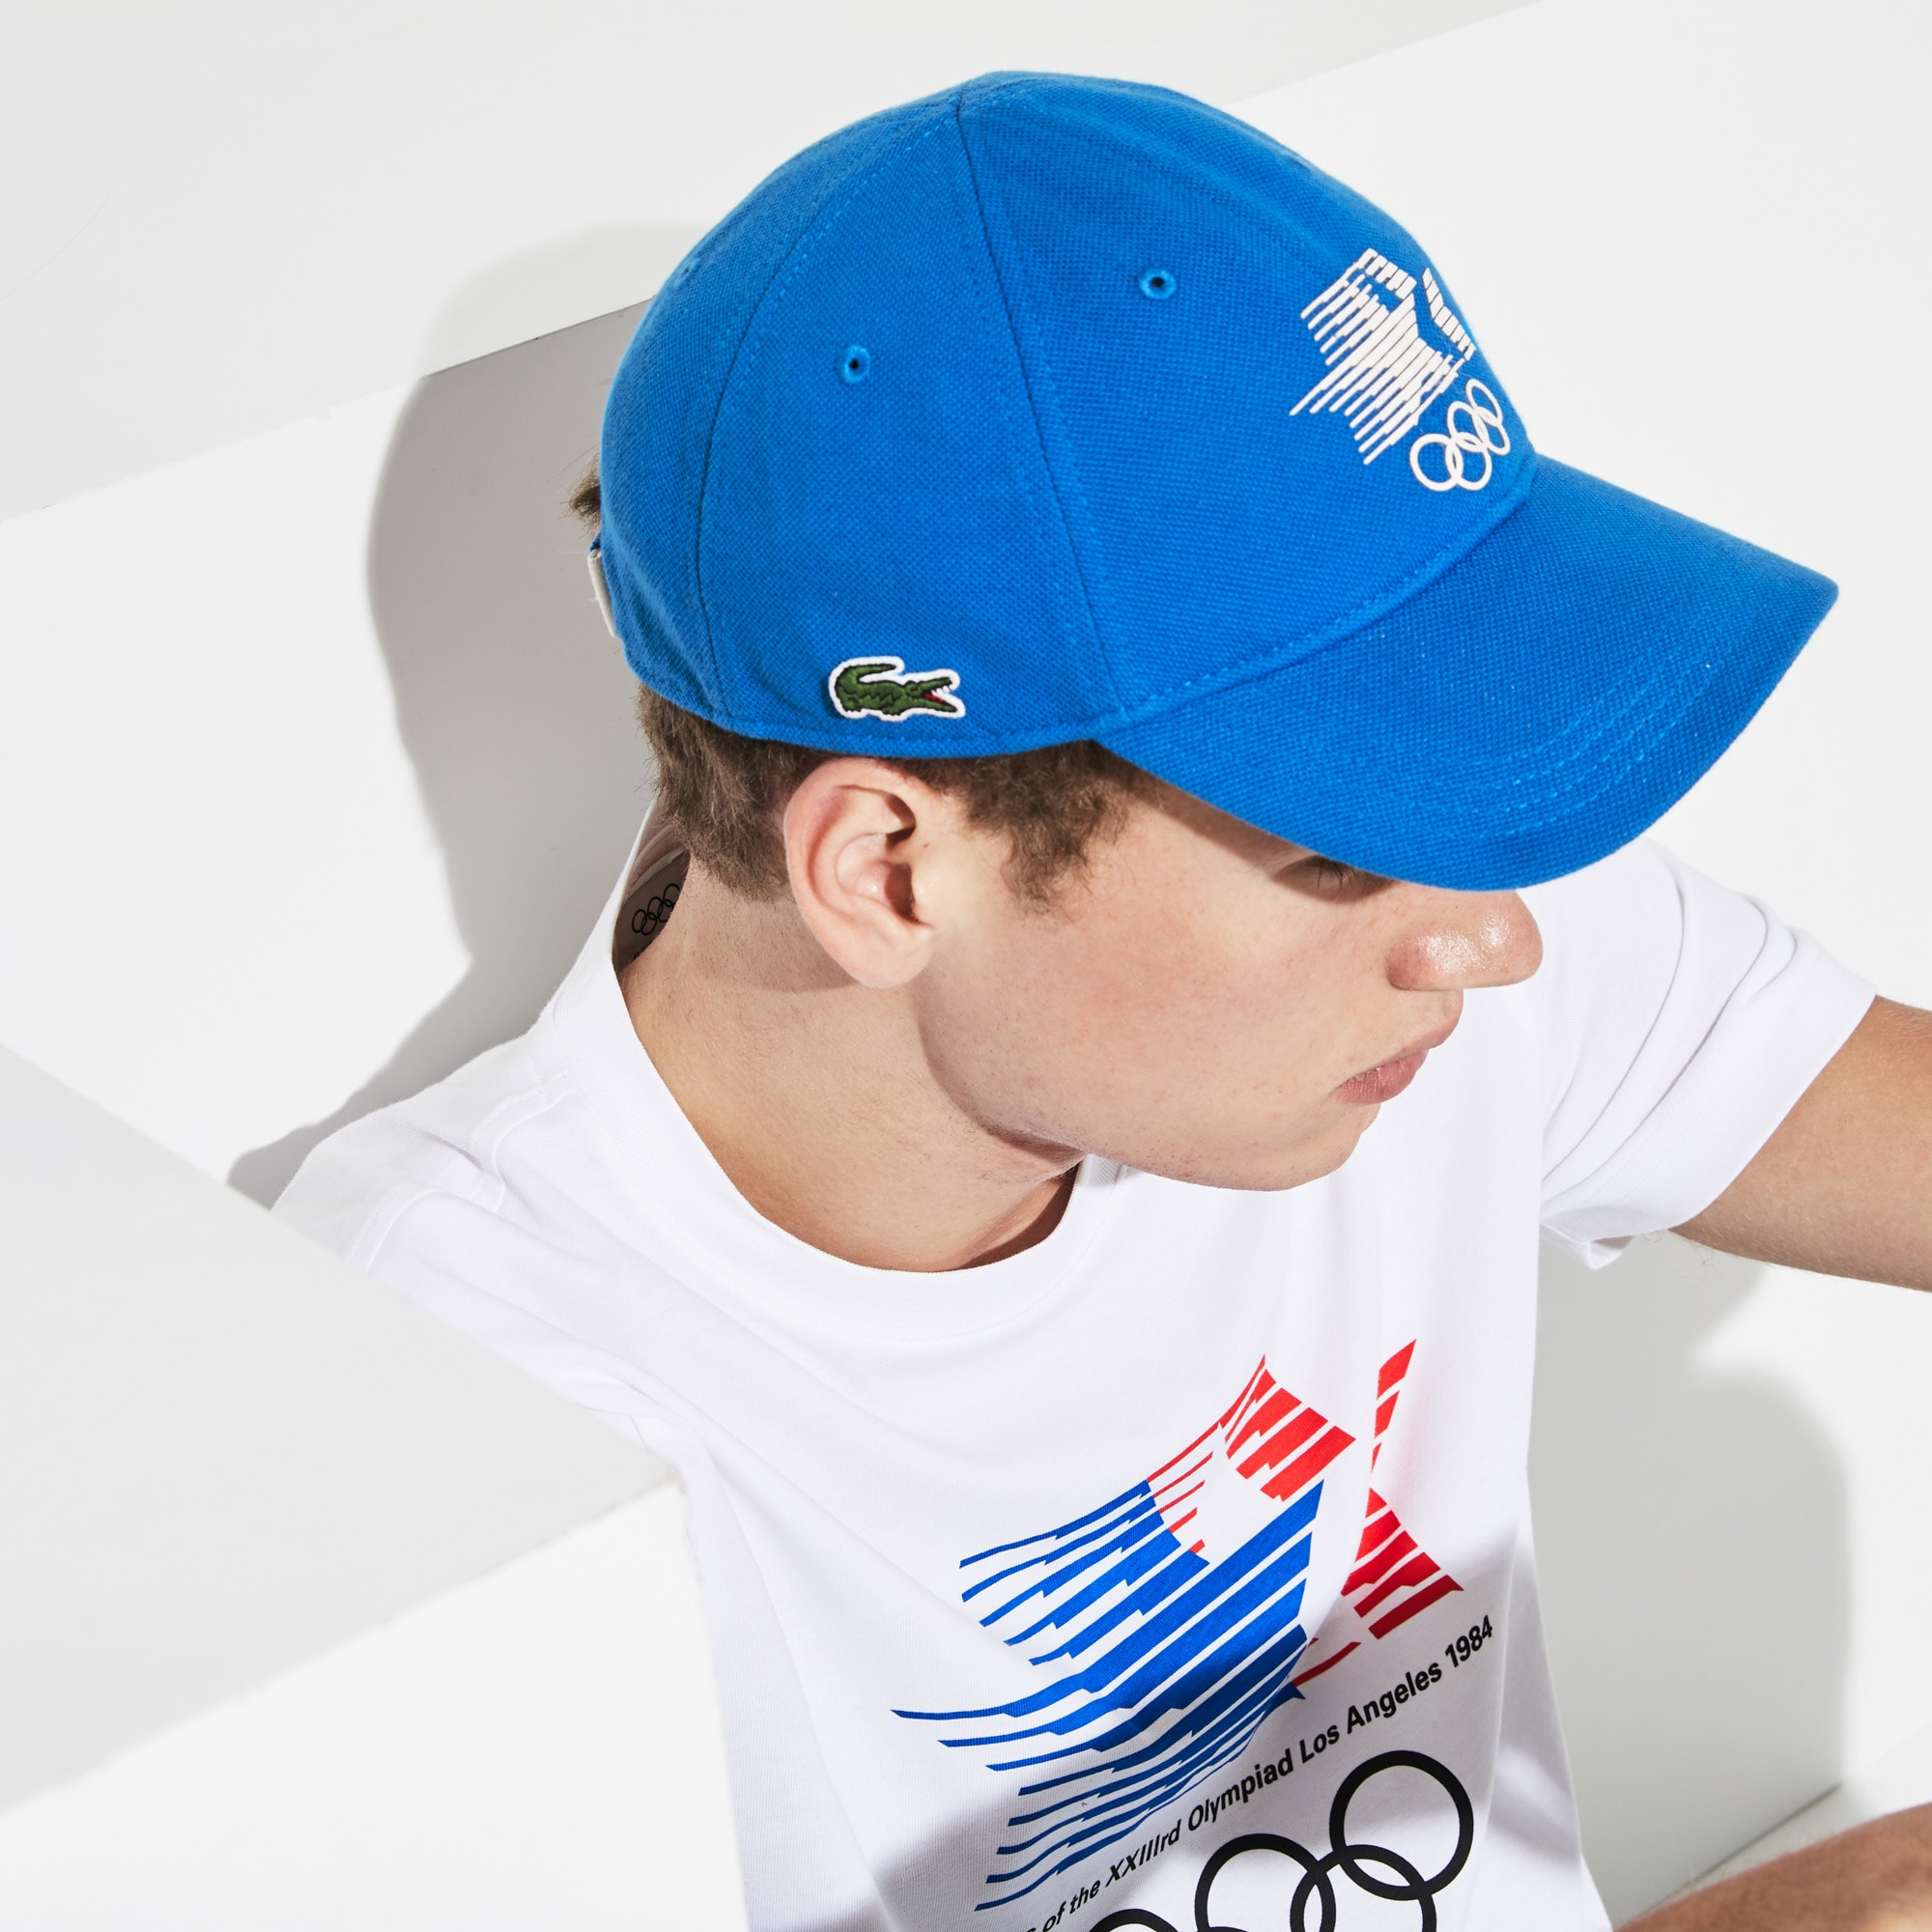 9979985227378c Men's Olympic Heritage Collection By Lacoste Logo Cotton Cap | LACOSTE